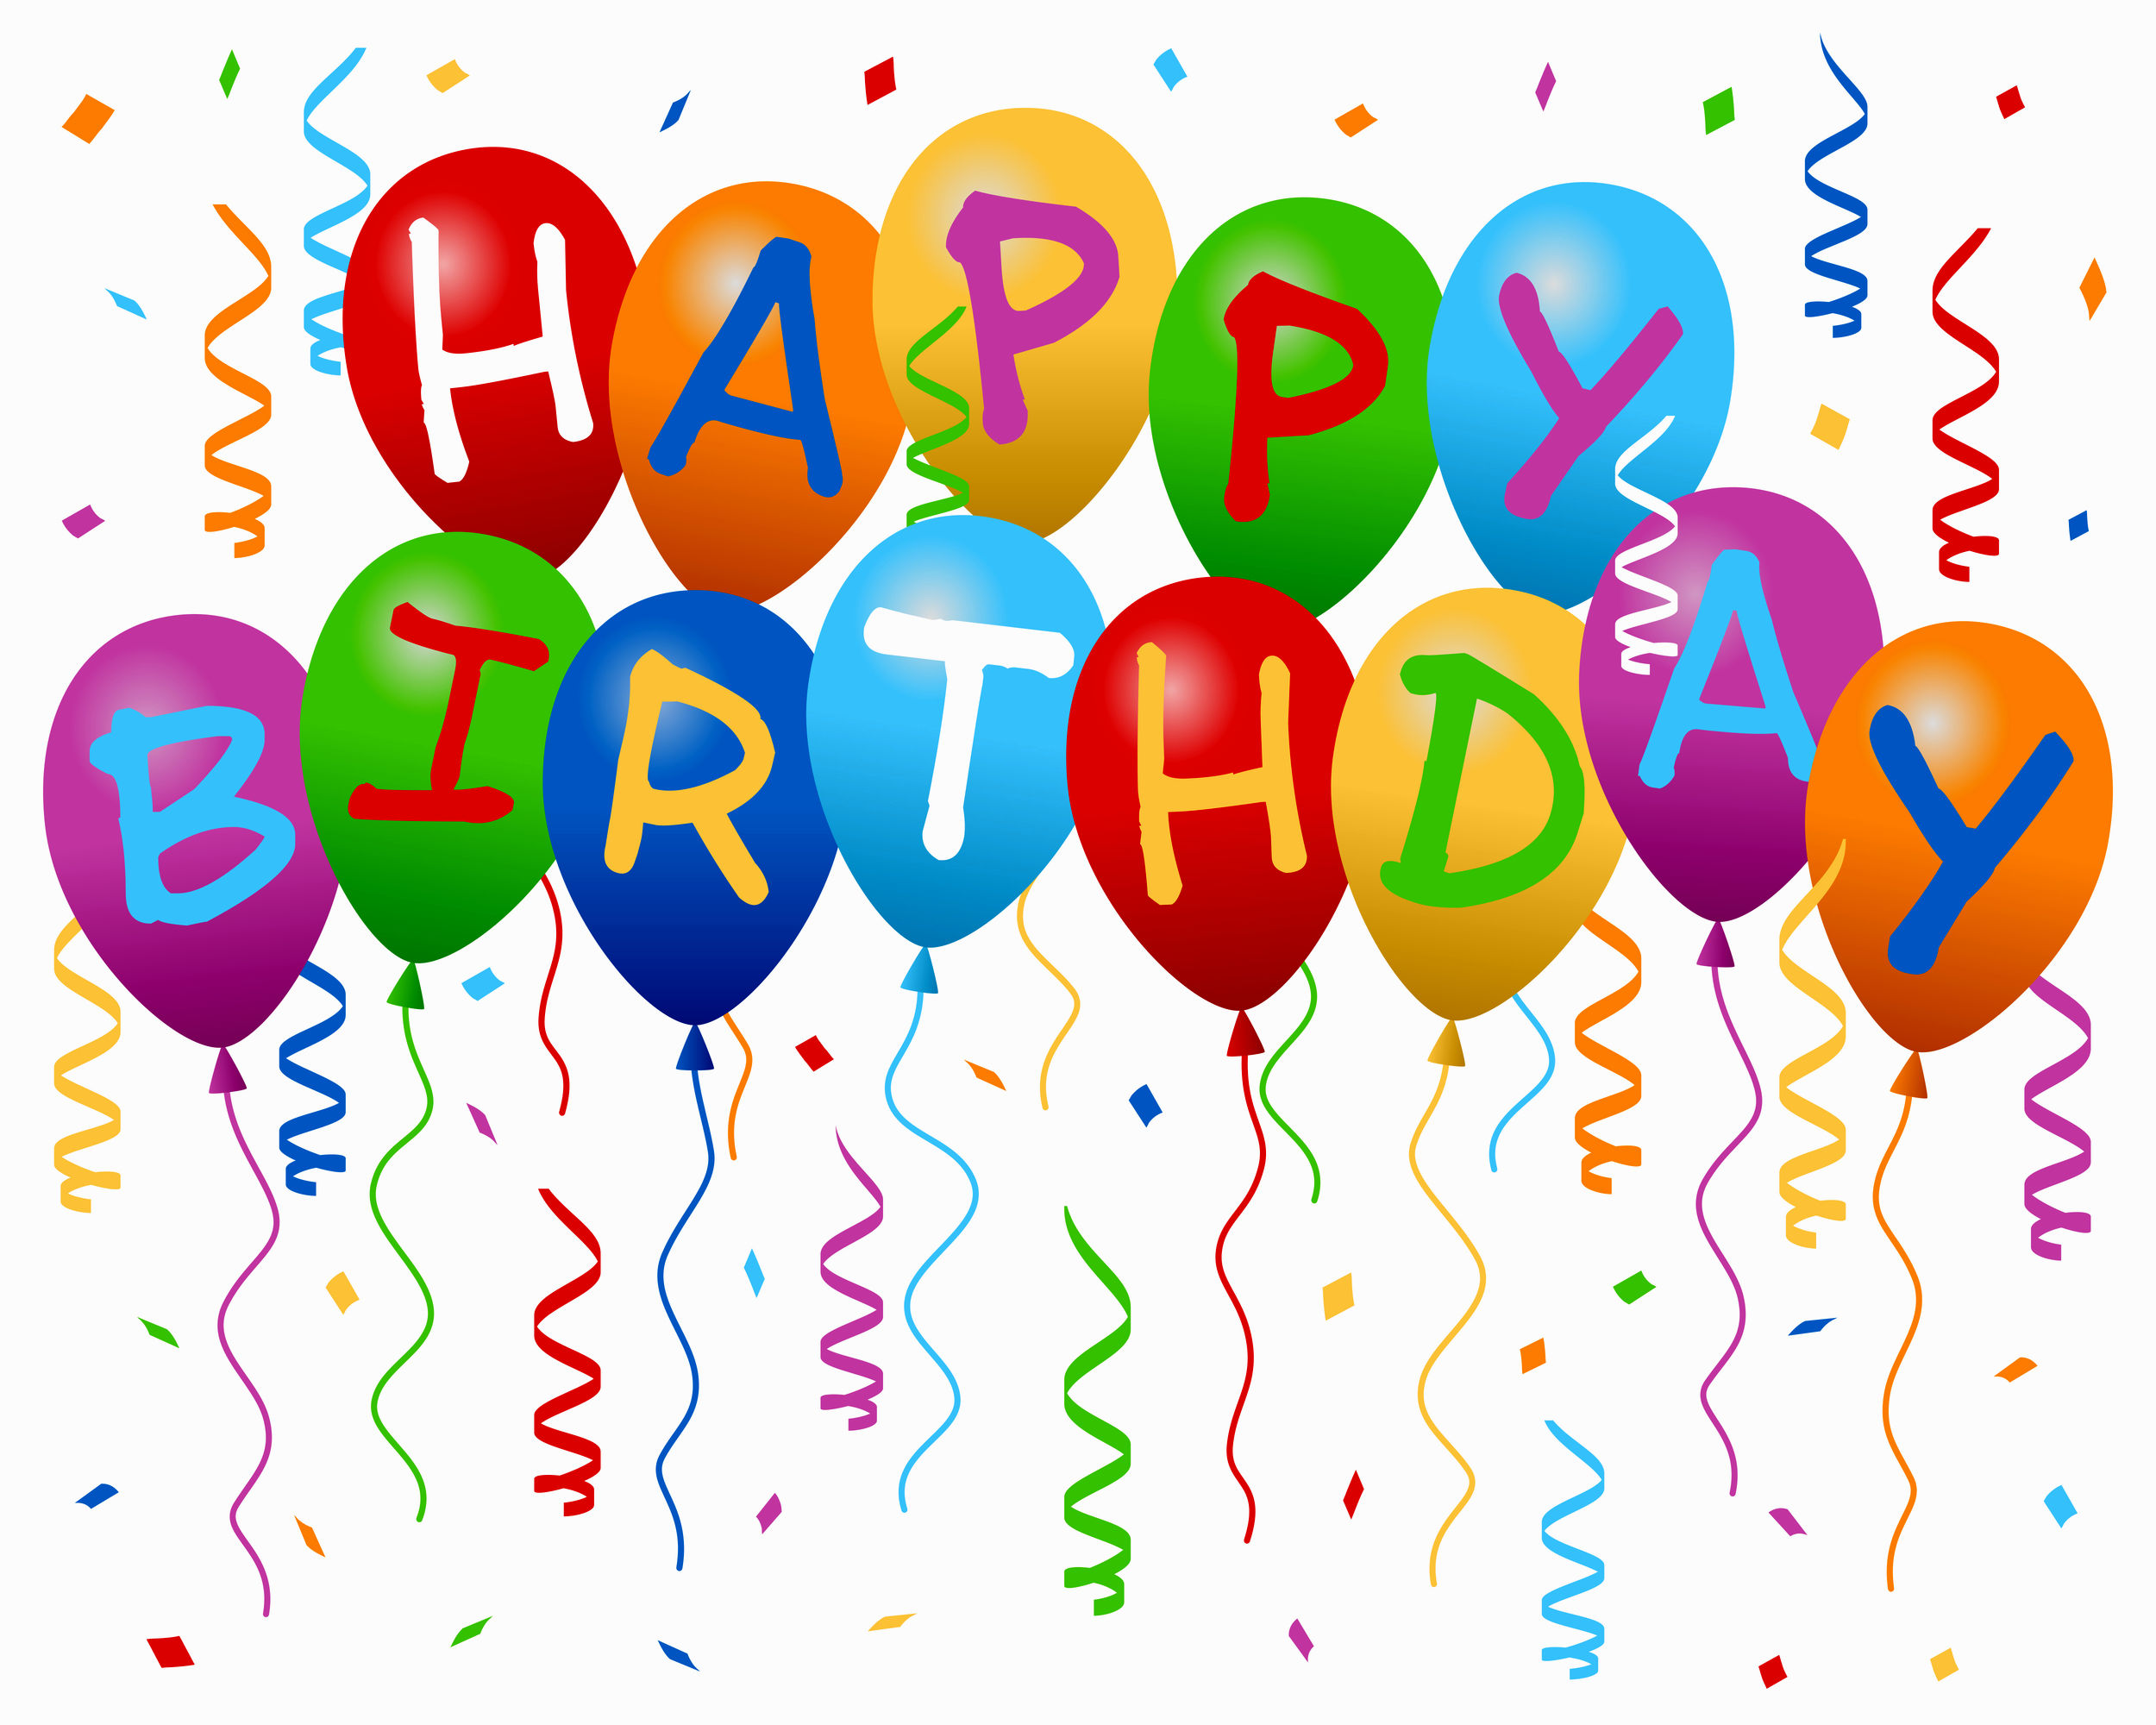 birthday sign ups ; fancy-april-birthday-sign-portrait-21-top-photo-with-regards-to-april-birthday-sign-that-oneself-should-not-notice-and-could-produce--influenced